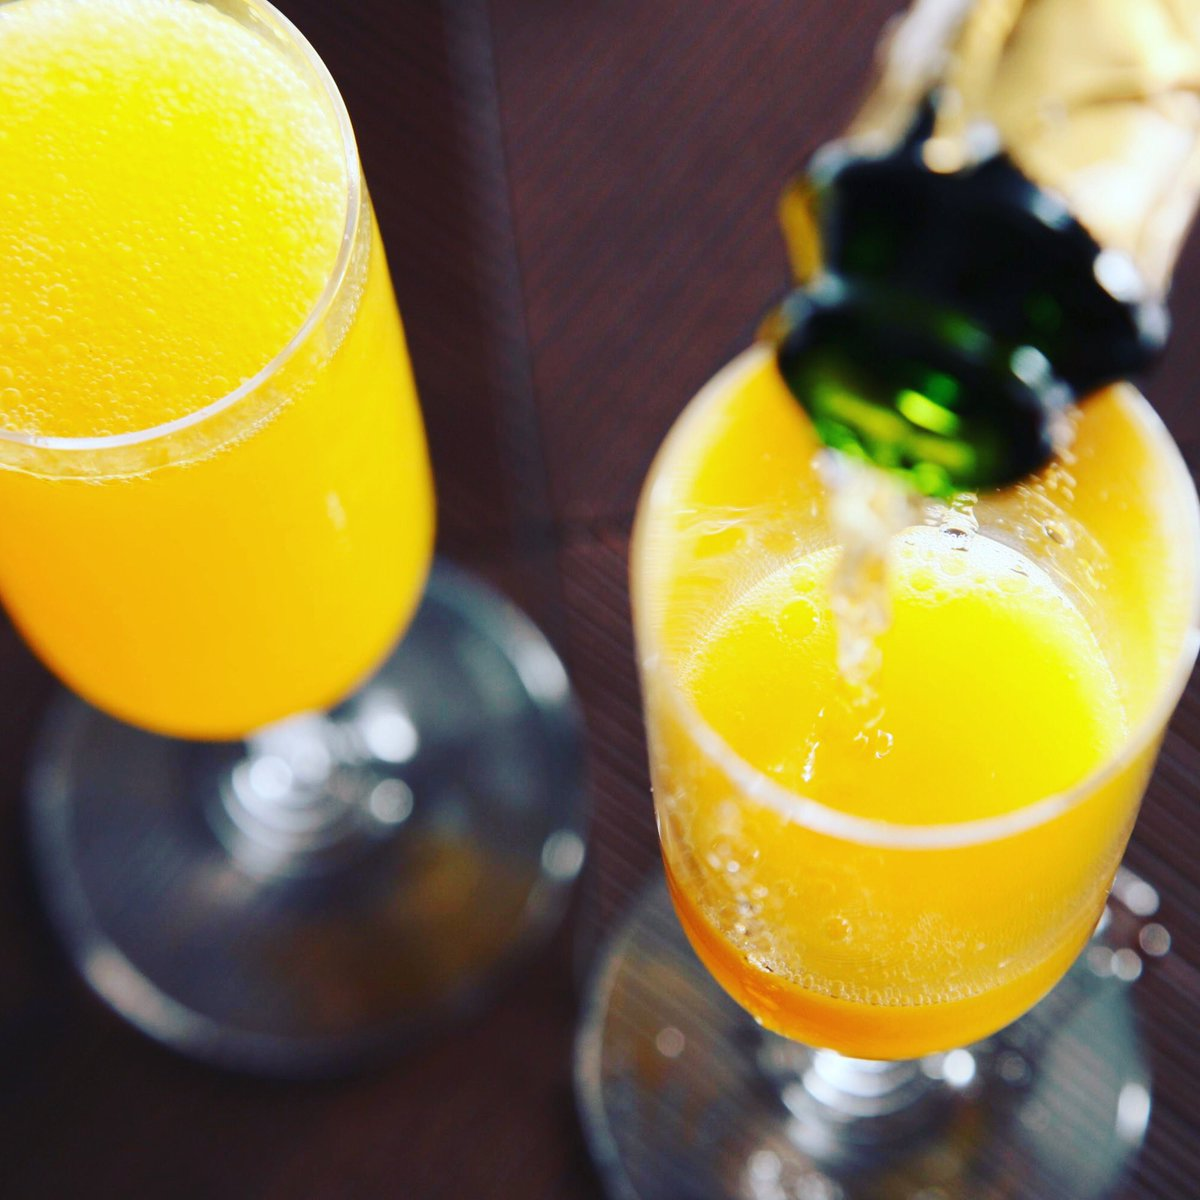 Mimosas count as your daily dose of Vitamin C right?? We're just going to say that's probably true so for your health you should have a few $7 Mimosas at Windsor Rose! #yyc #calgary #bar #drink #drinks #feature #yycpubs